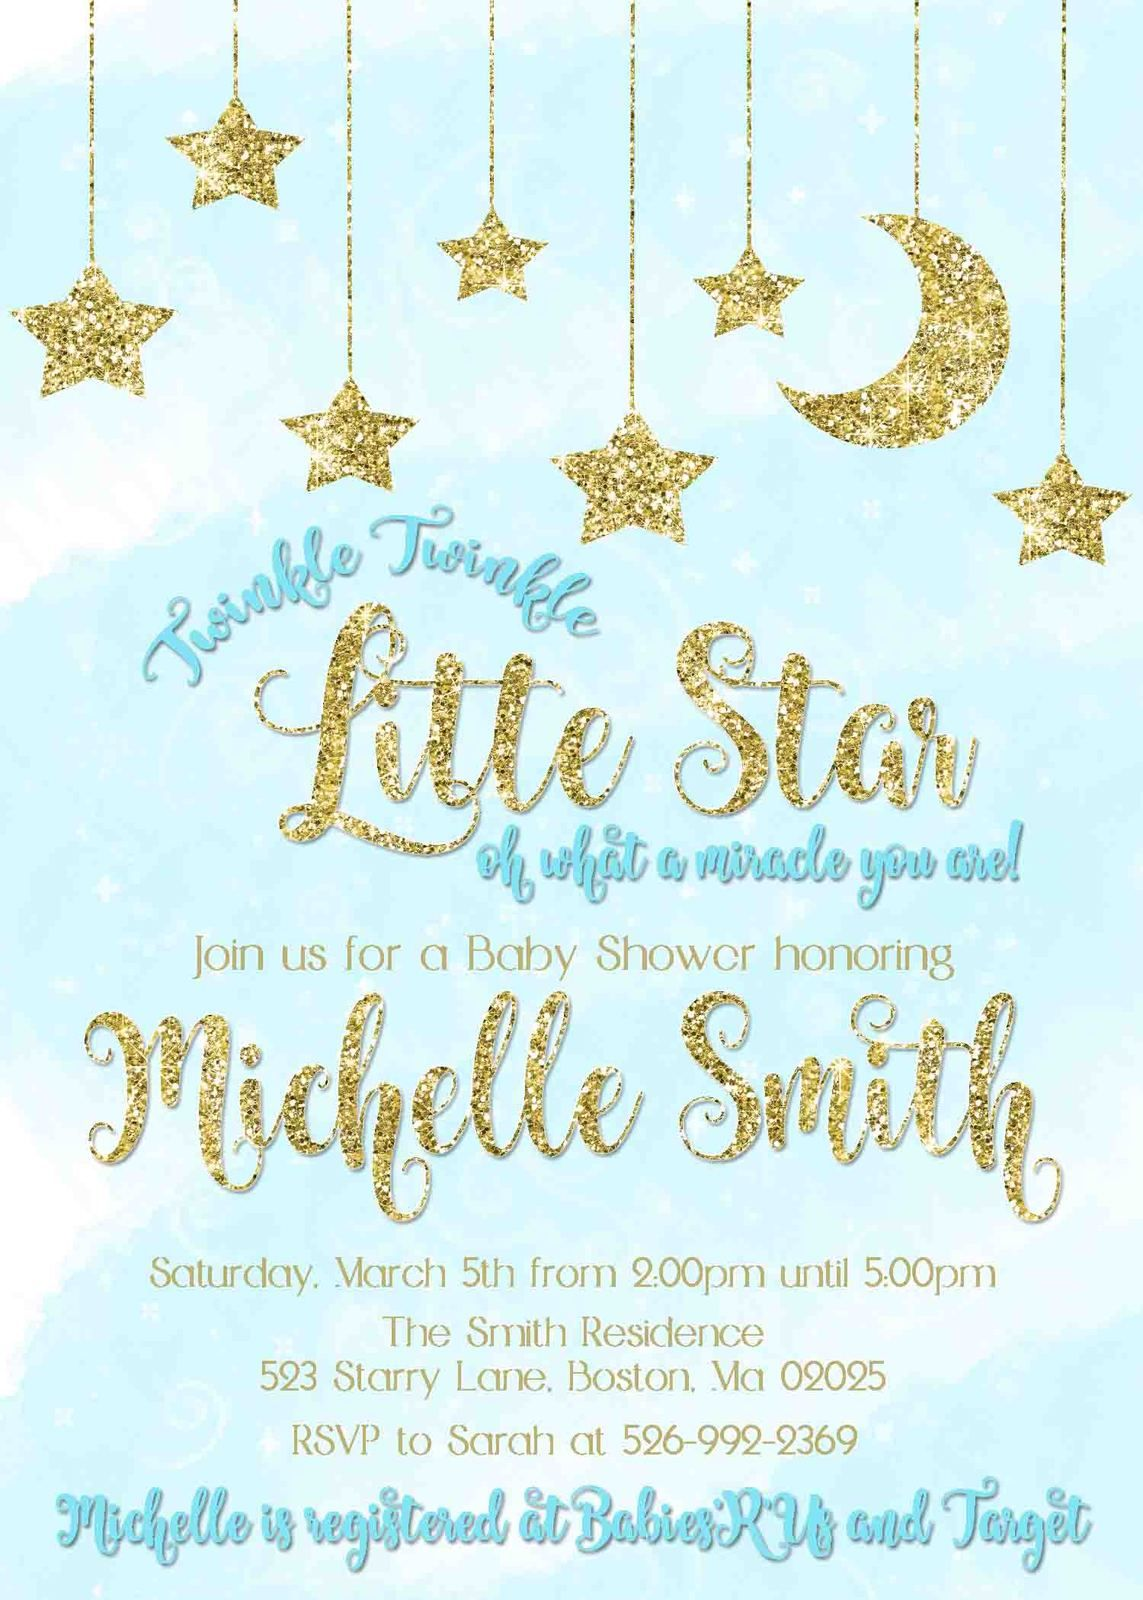 Twinkle Twinkle Little Star Baby Shower Invitation   Blue